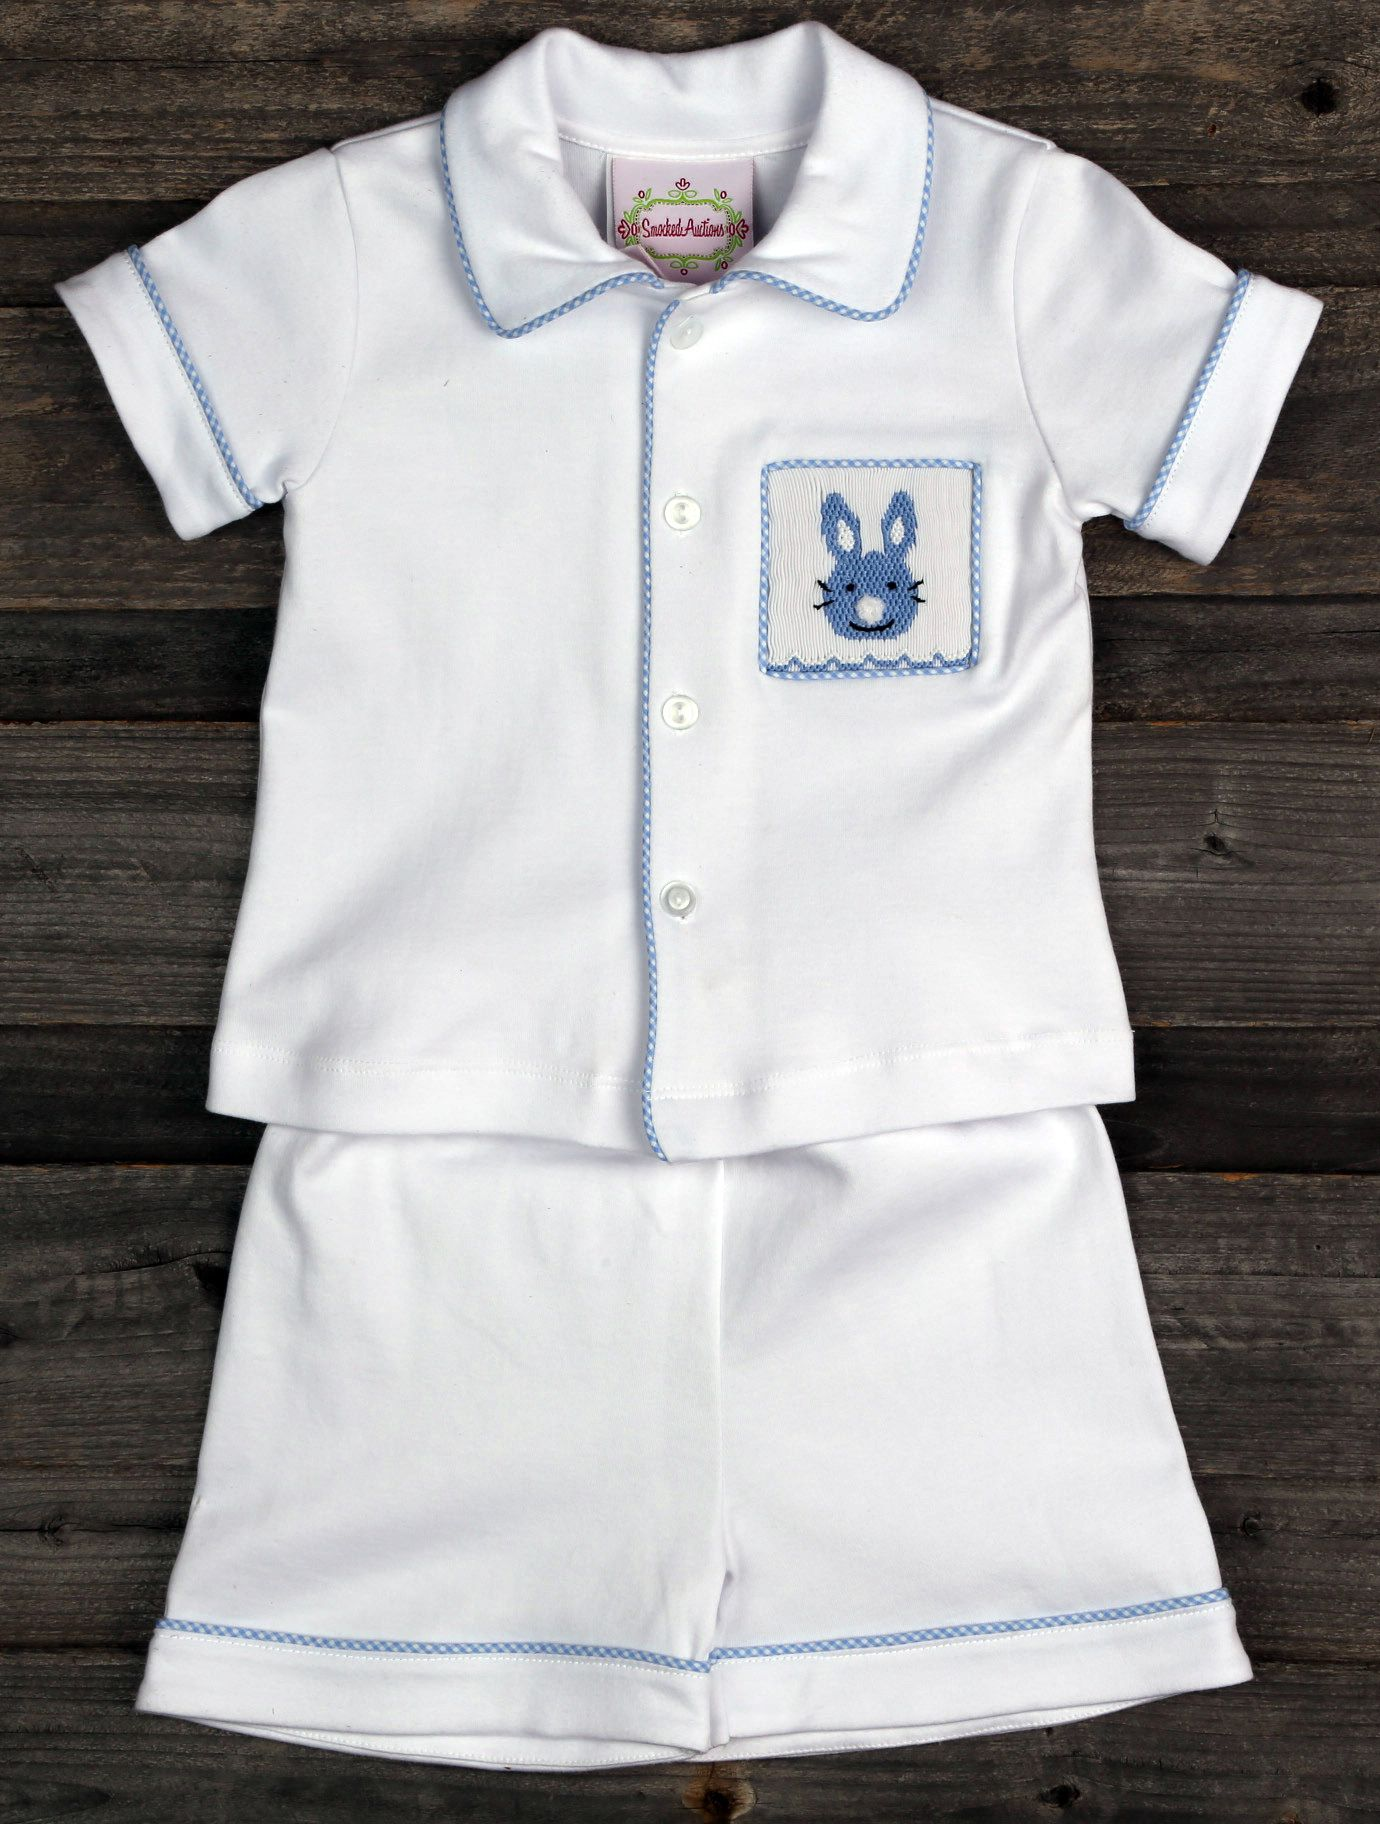 9766541d8 Boys Smocked Bunny Pajamas for Easter from Smocked Auctions | Easter ...